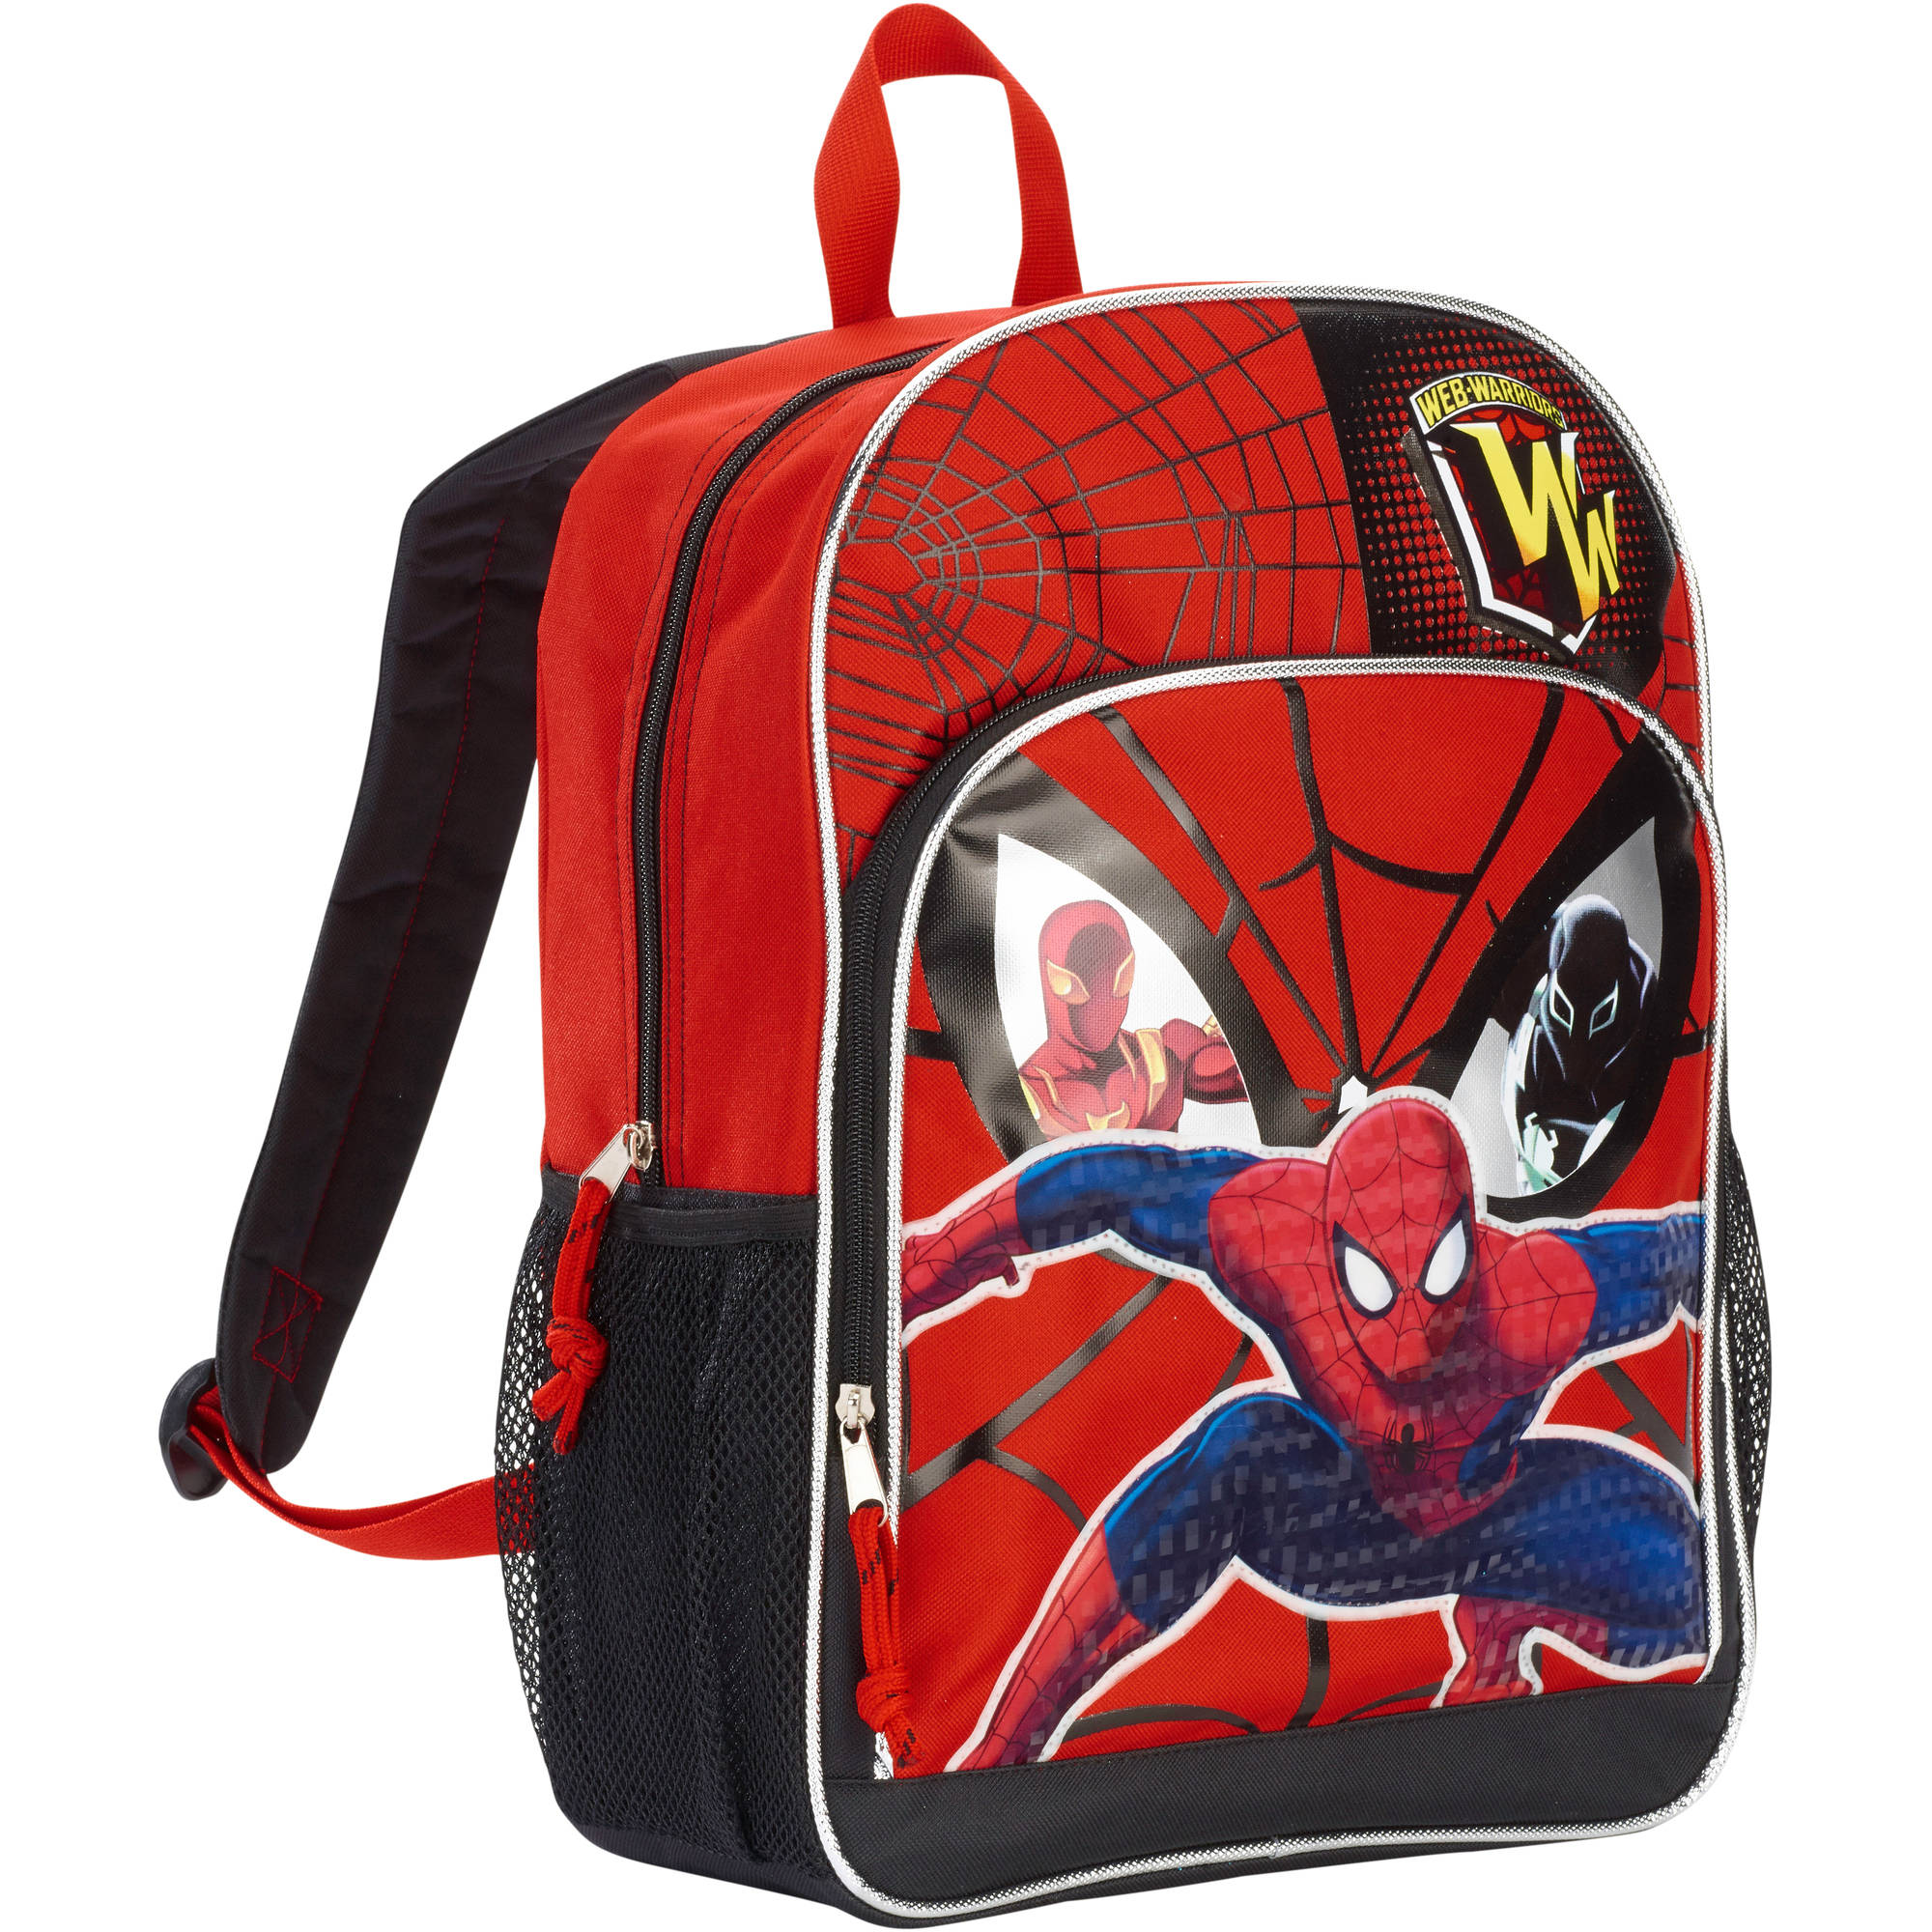 Spiderman Backpack -- Deluxe 16 Backpack with Padded Shoulder Straps (Spiderman School Supplies)